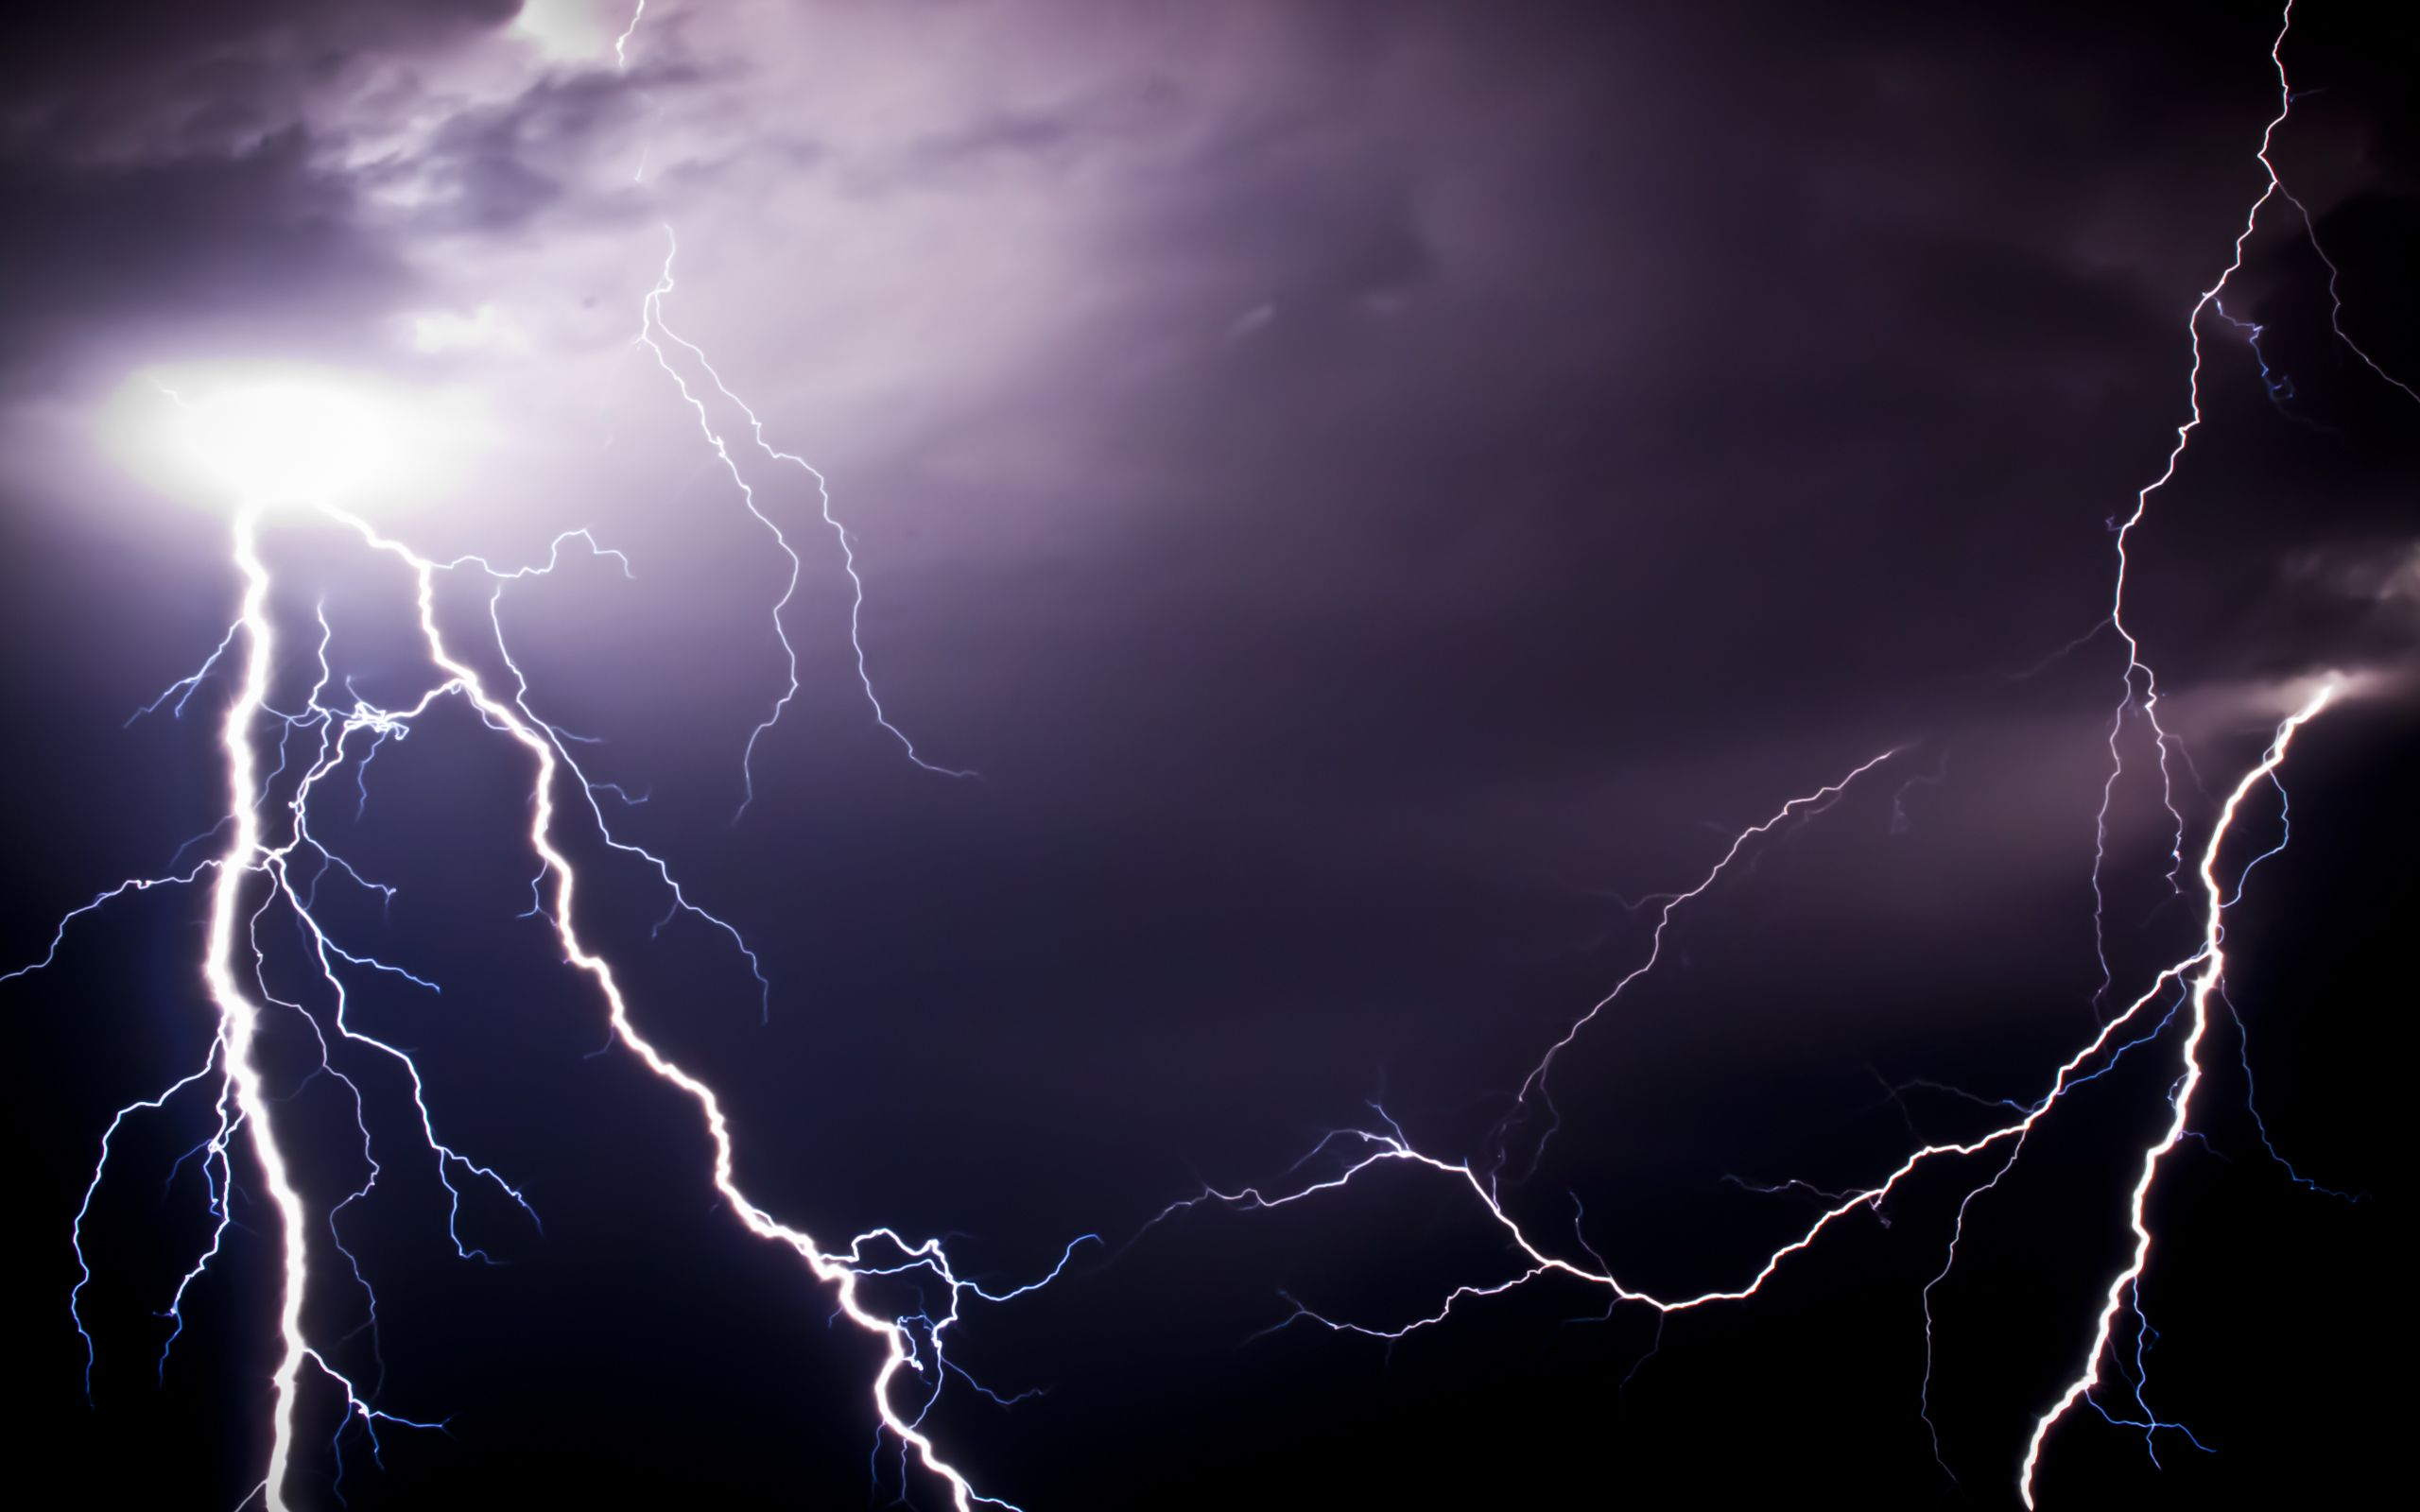 Awesome Storm Lightning Free Download Picture Fantasia Fique